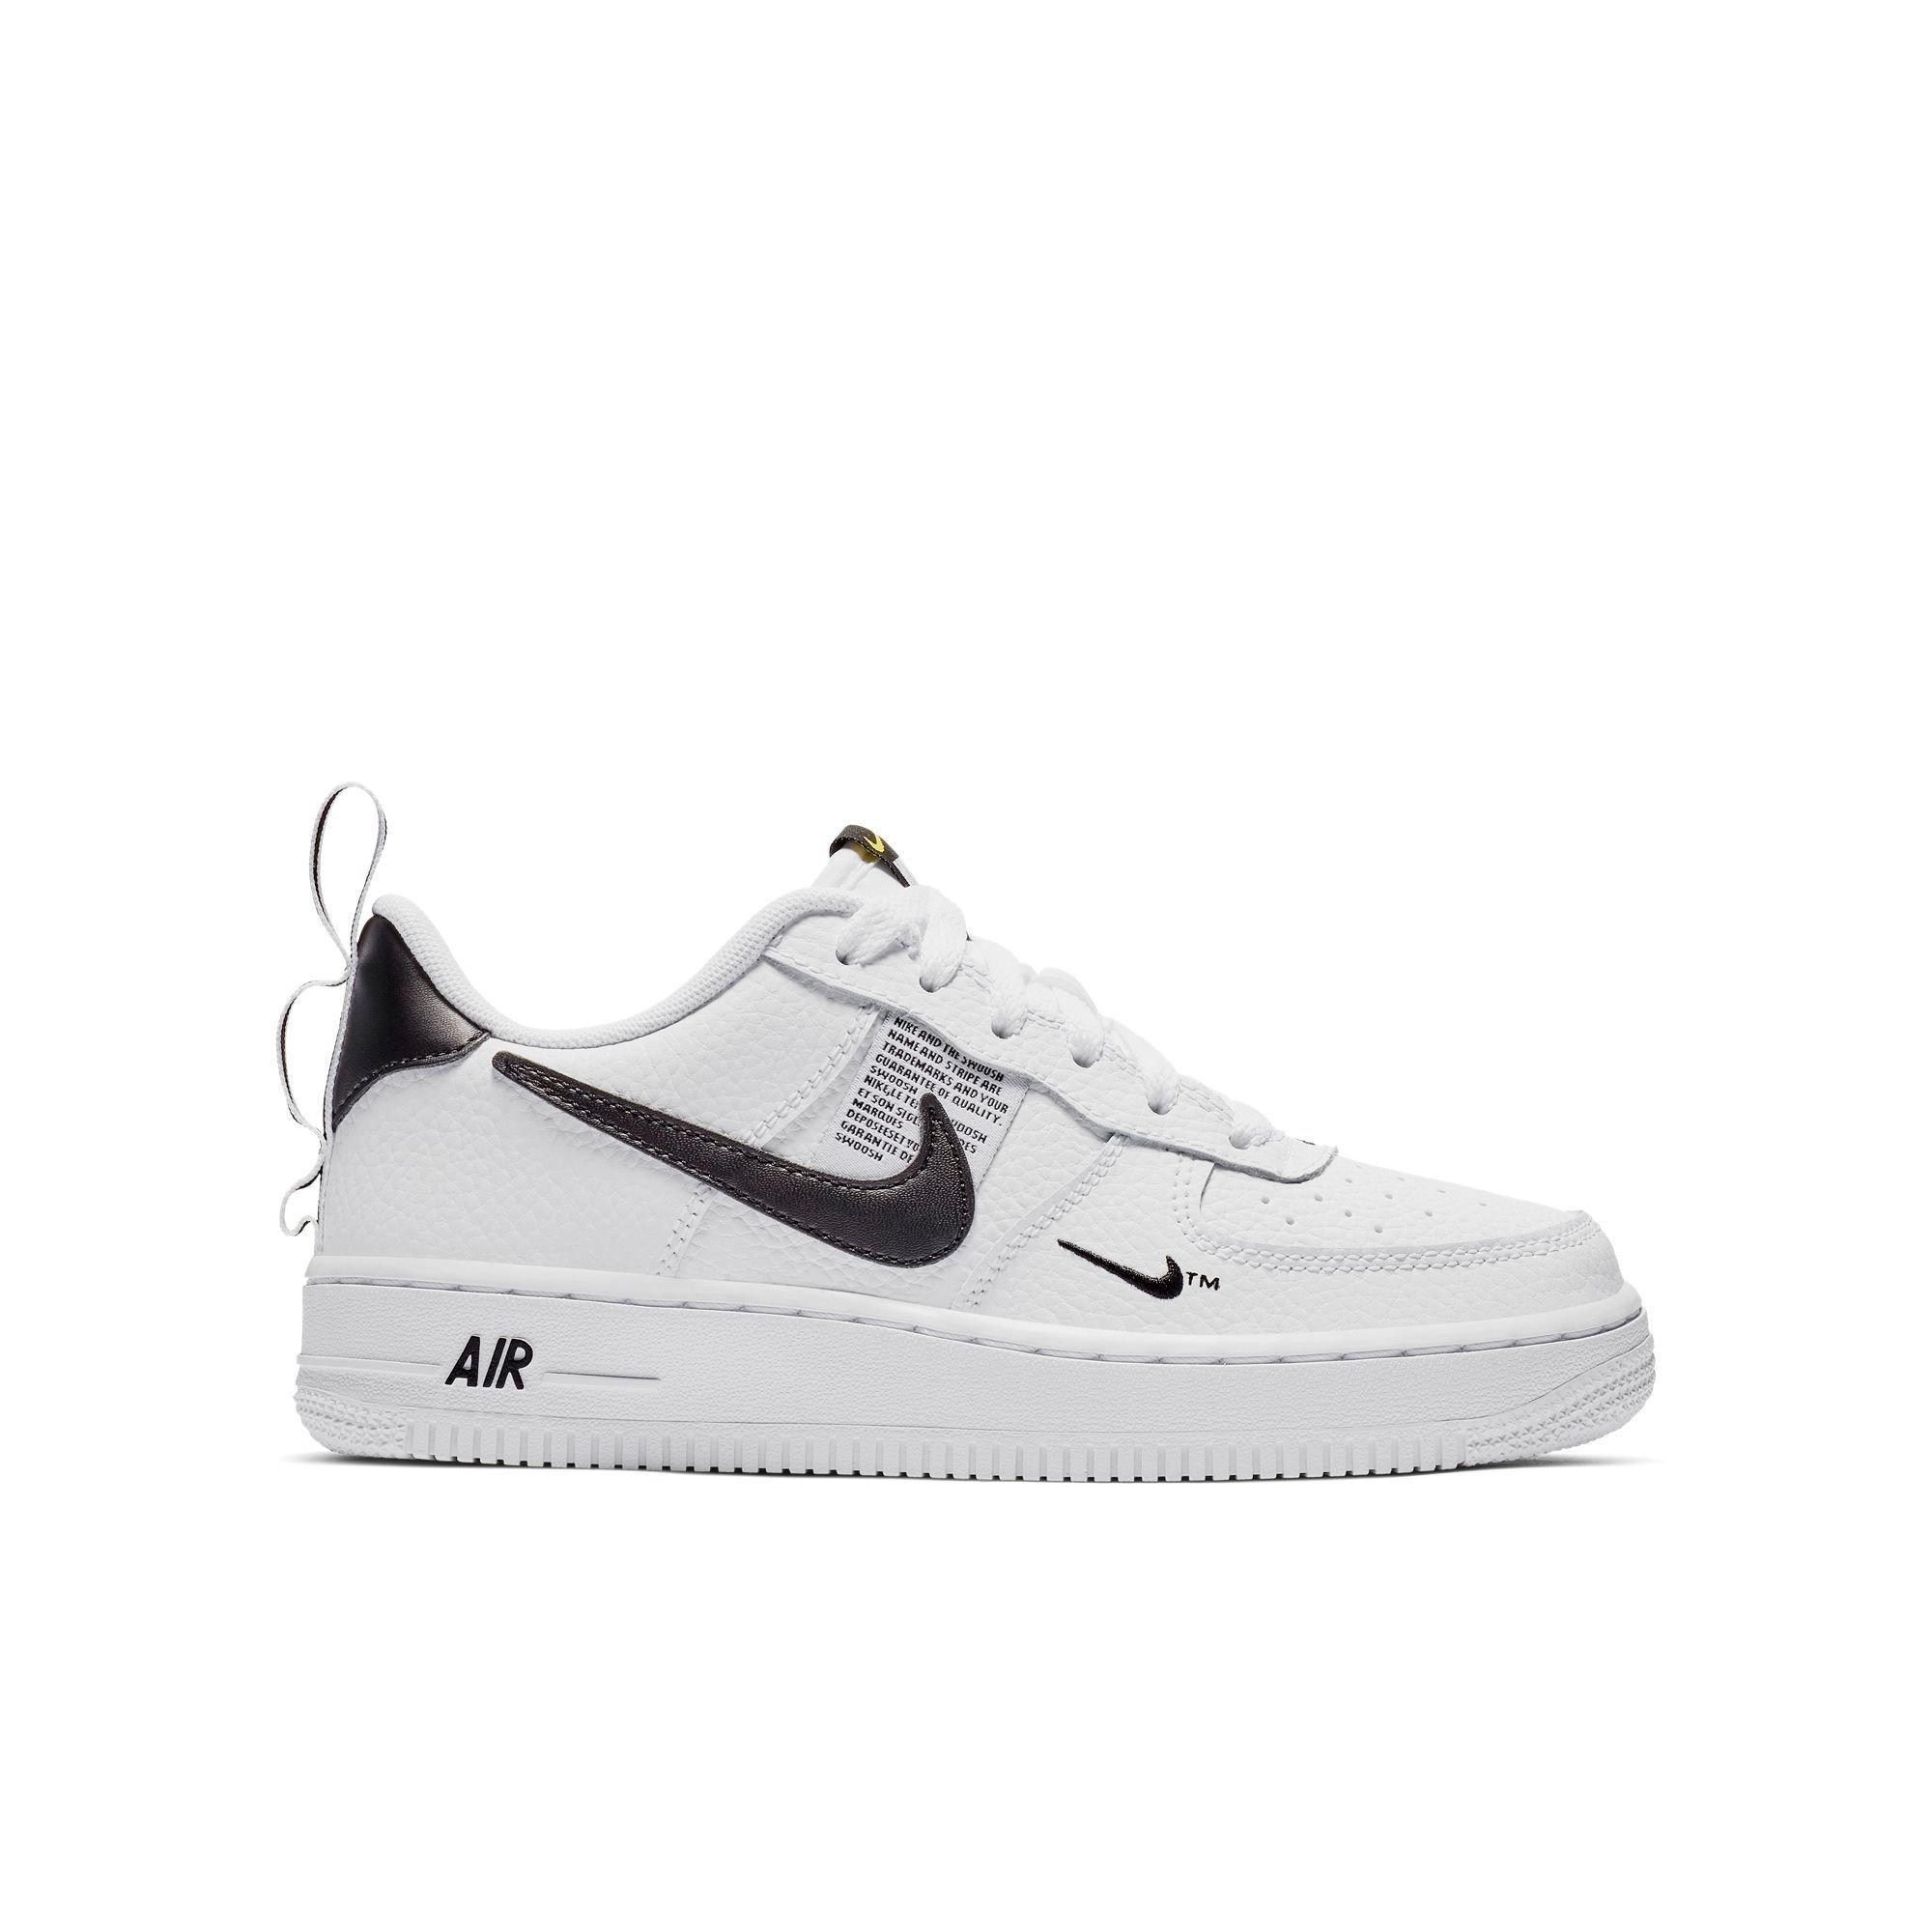 Air Force One Shoes Height - Musée des impressionnismes Giverny 6f04243aa886